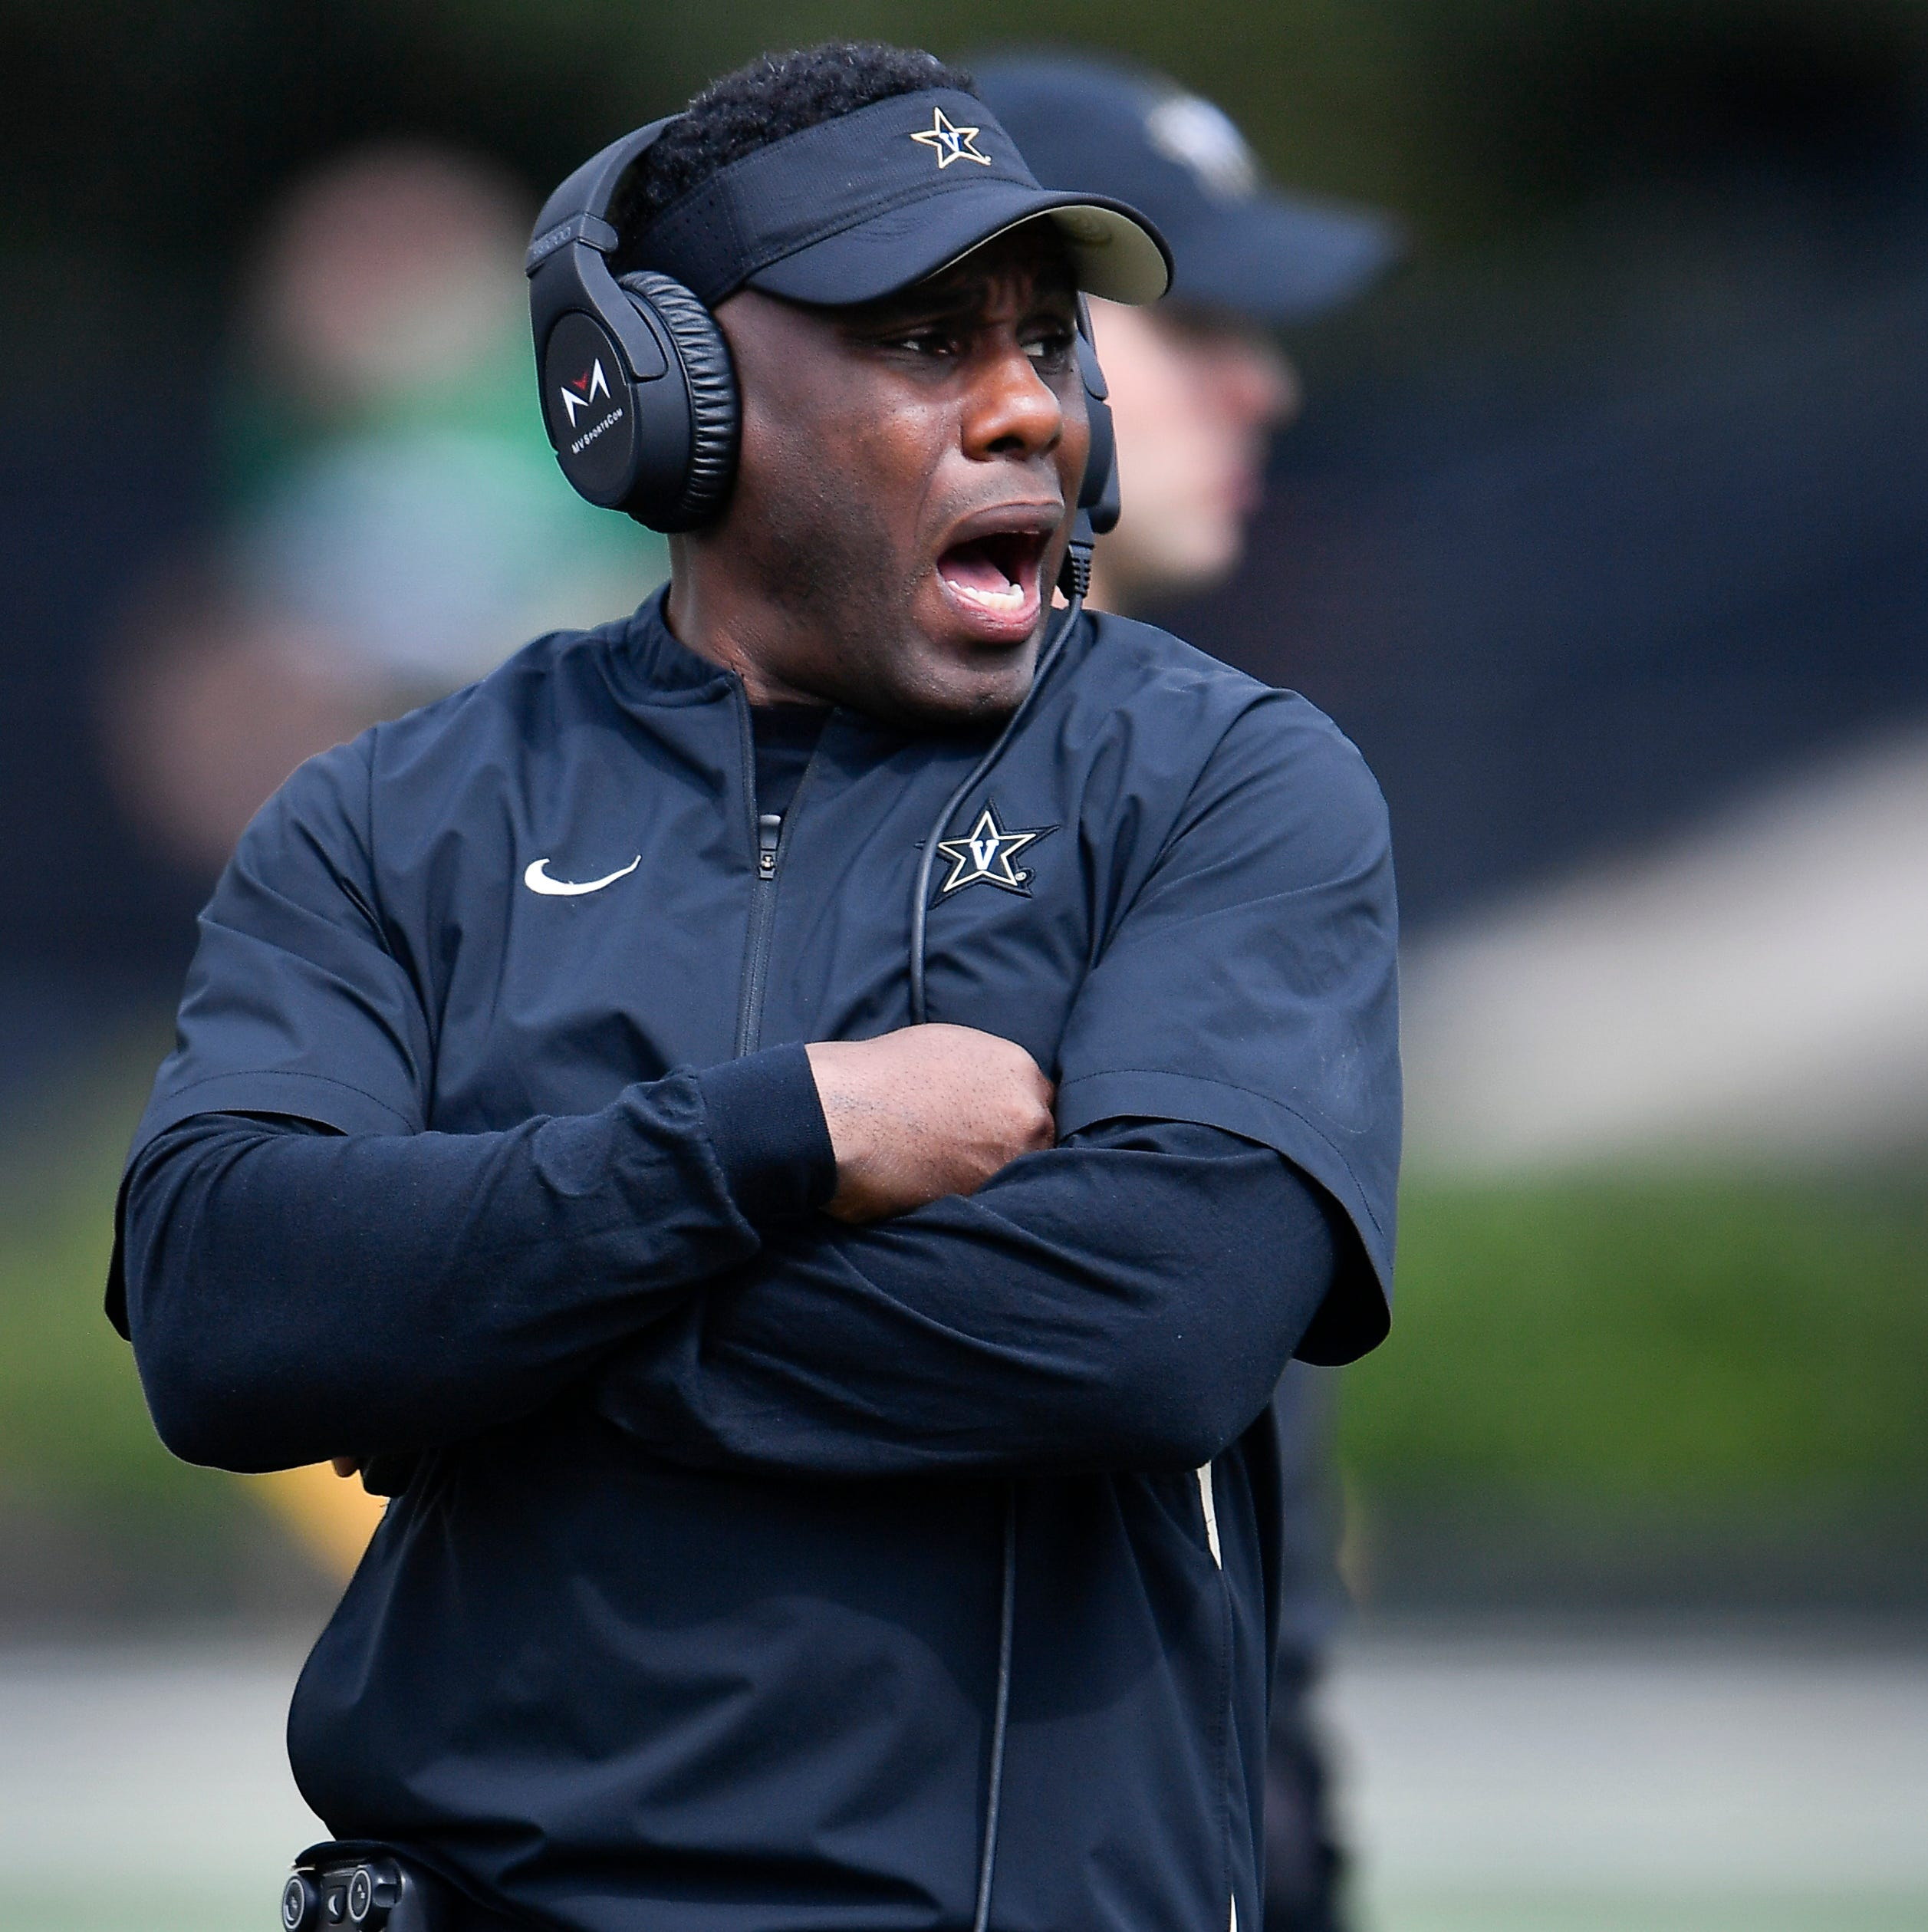 Vanderbilt football: Former player Jovan Haye among two new assistant coaches